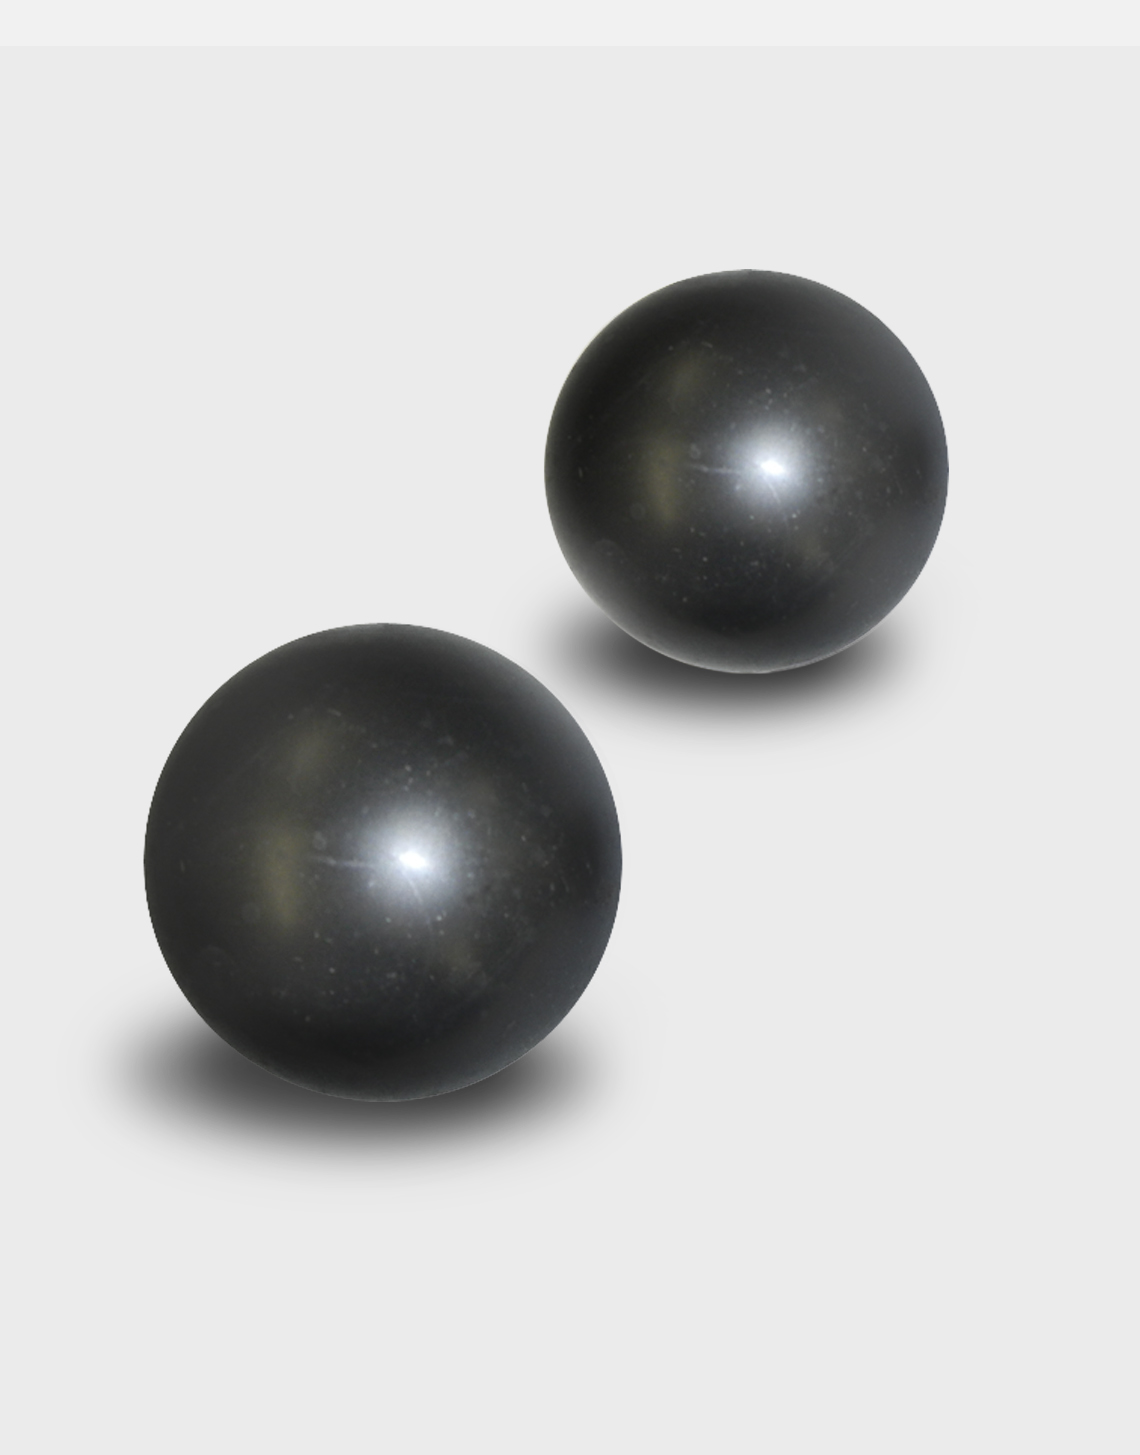 Black Plastic Balls for Ladder Rest